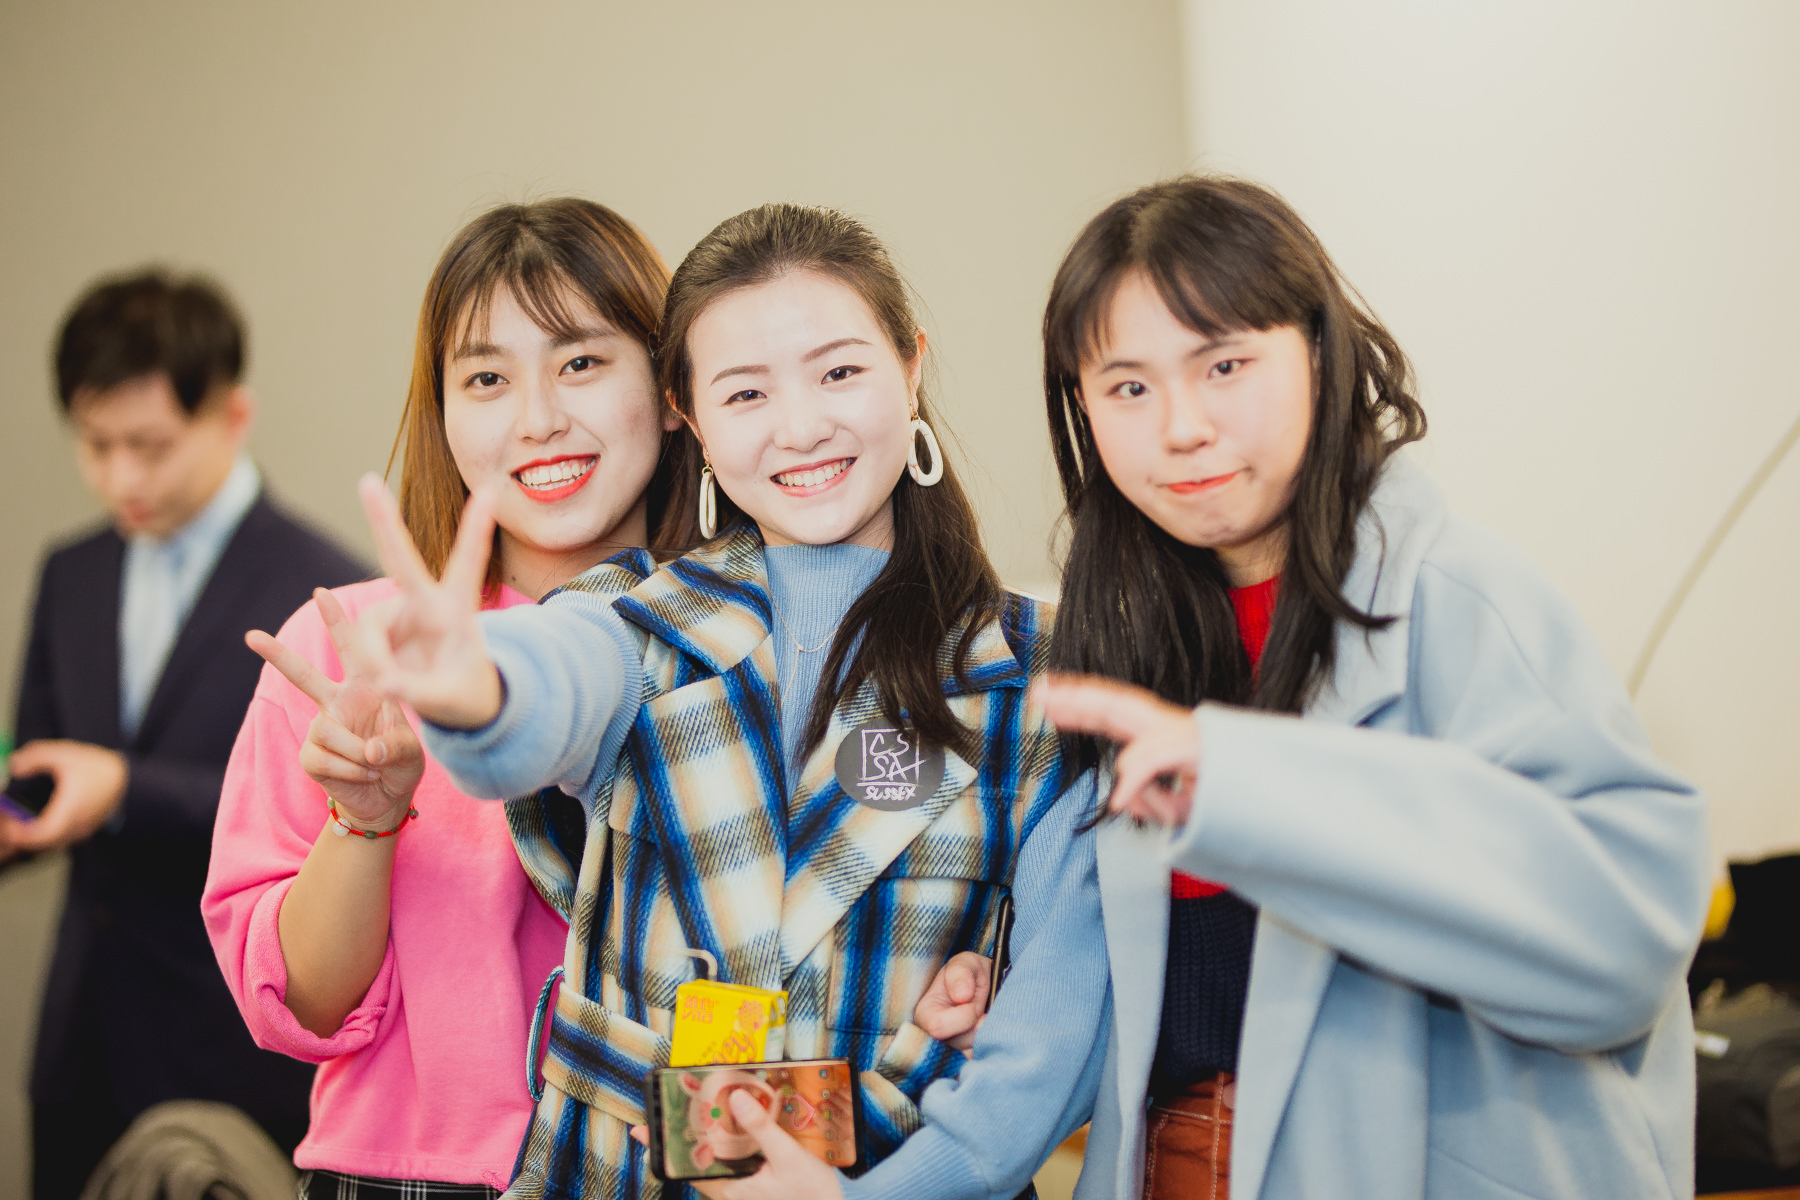 Chinese Girls Posing at University of Sussex